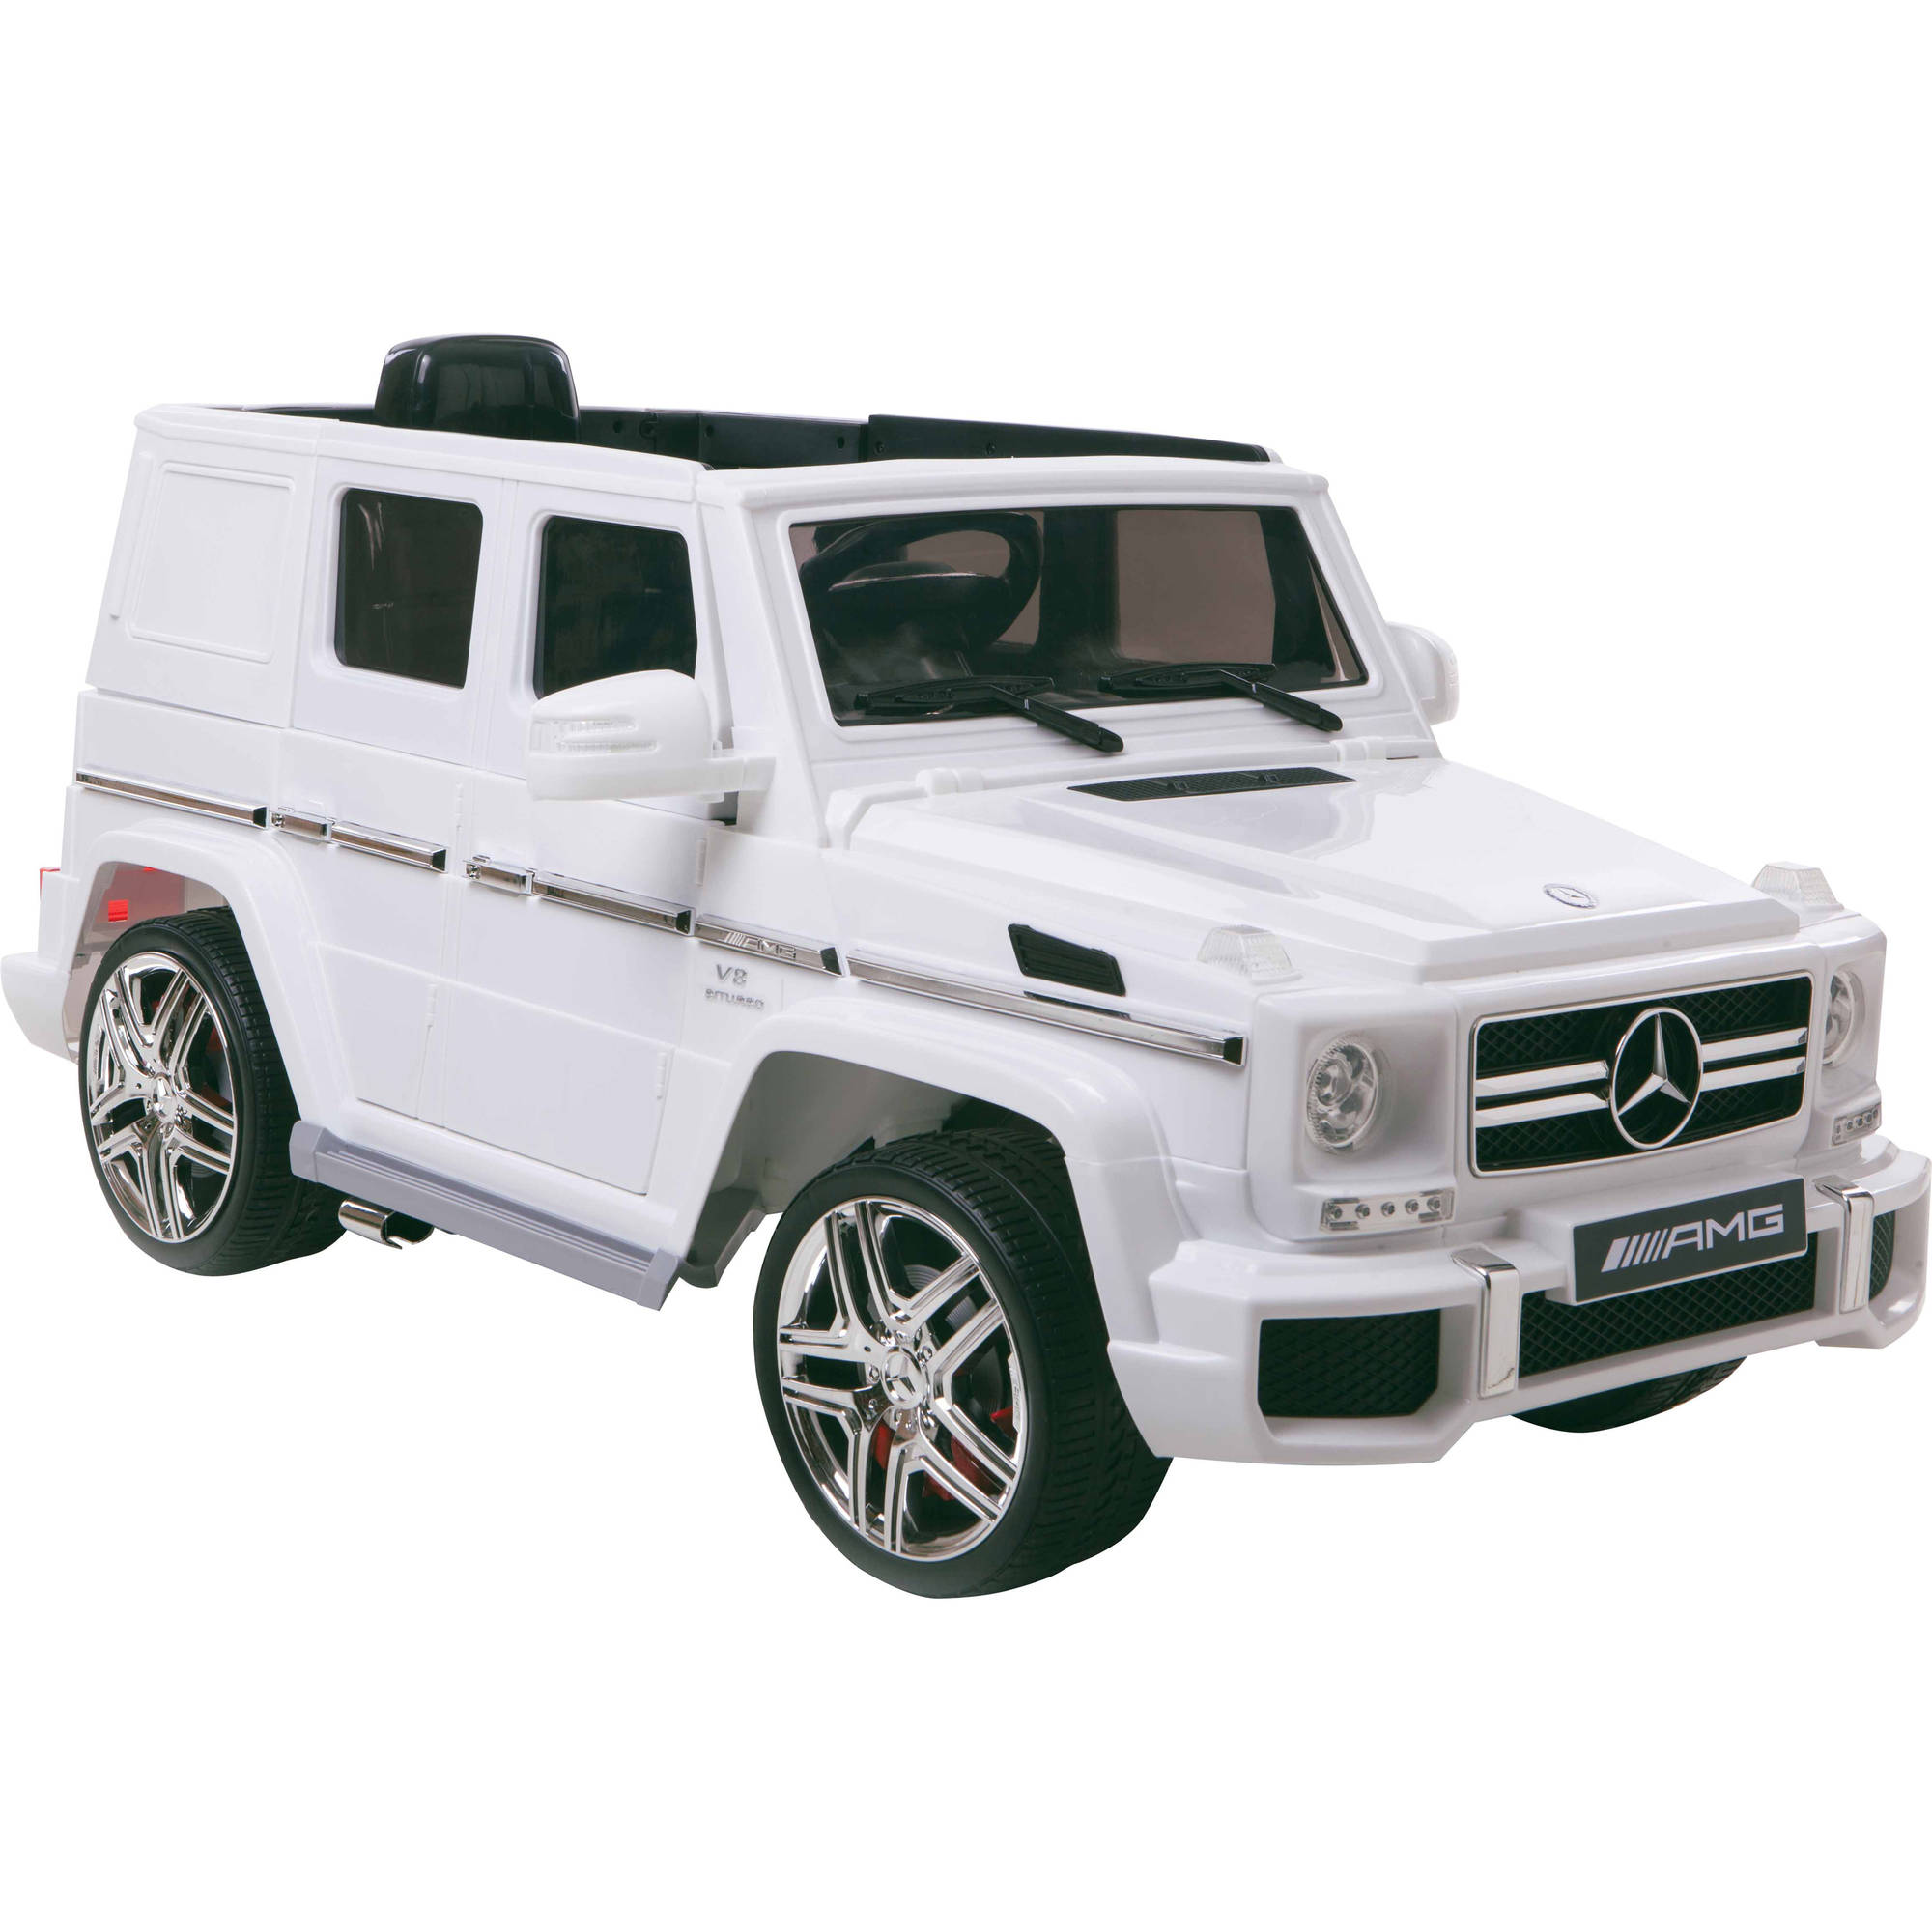 12V Mercedes Benz G63 AMG 1-Seater Battery-Powered Ride-On, White